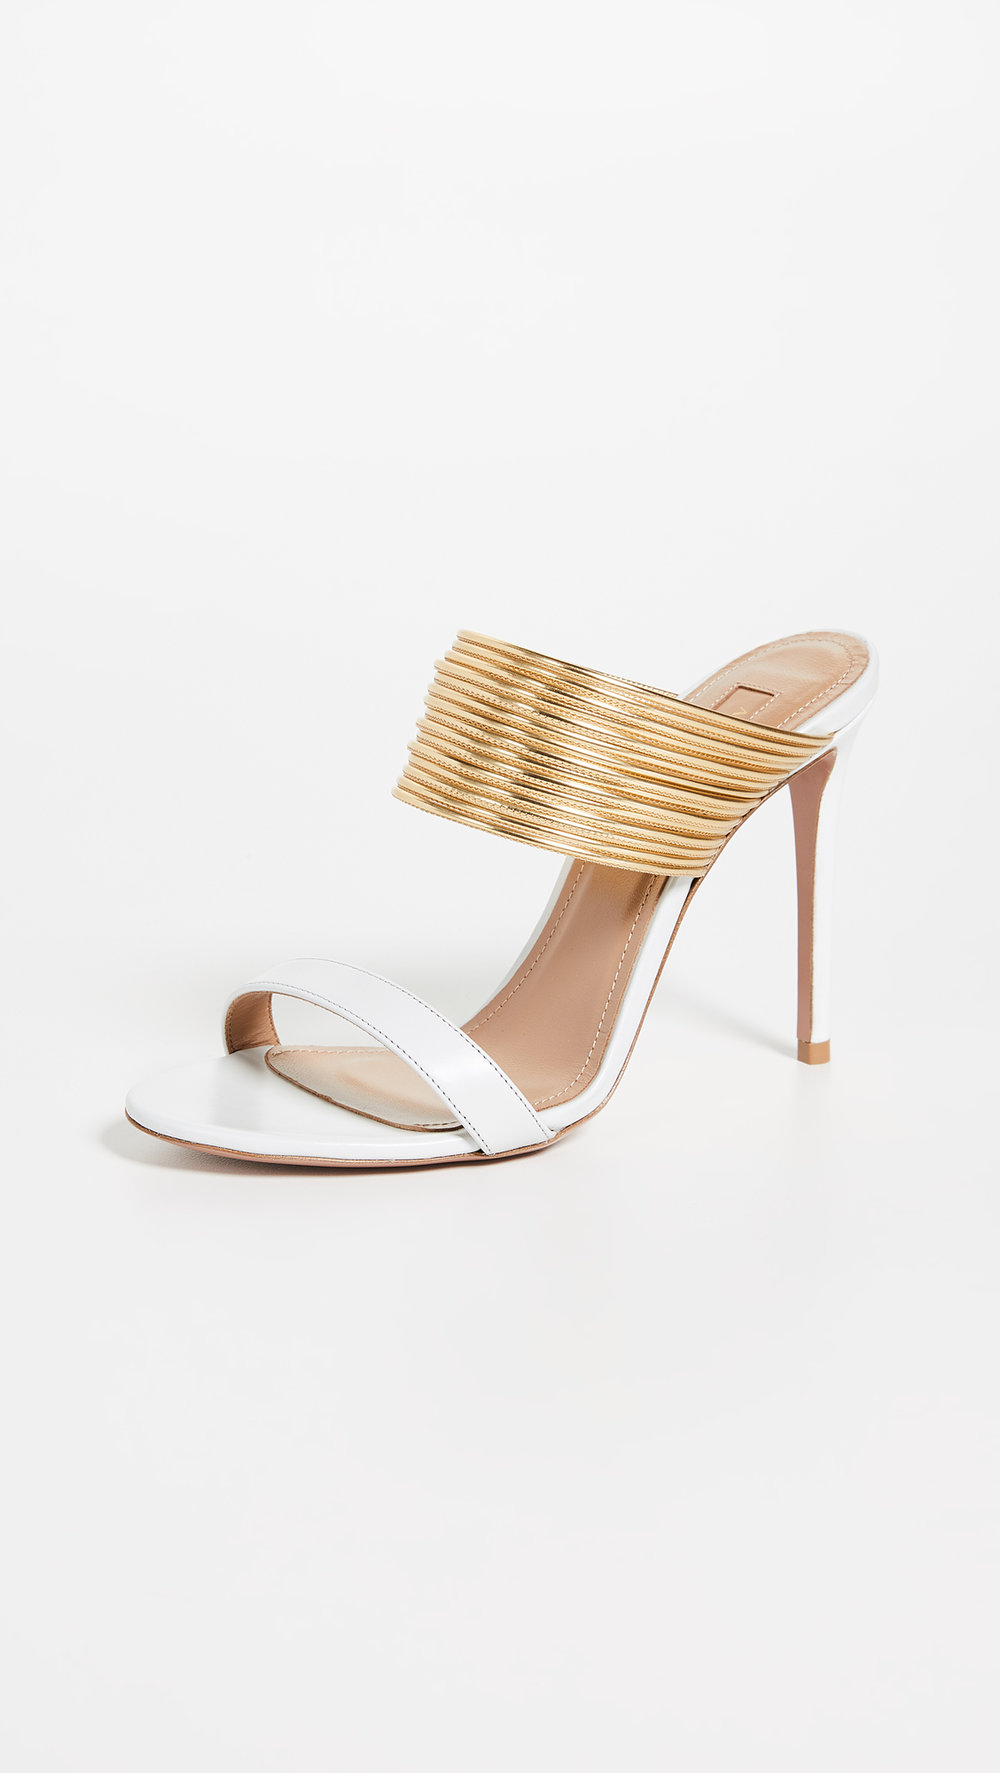 RENEZ VOUS 105 SANDALS BY AQUAZURRA, $725.00 AT SHOPBOP.COM